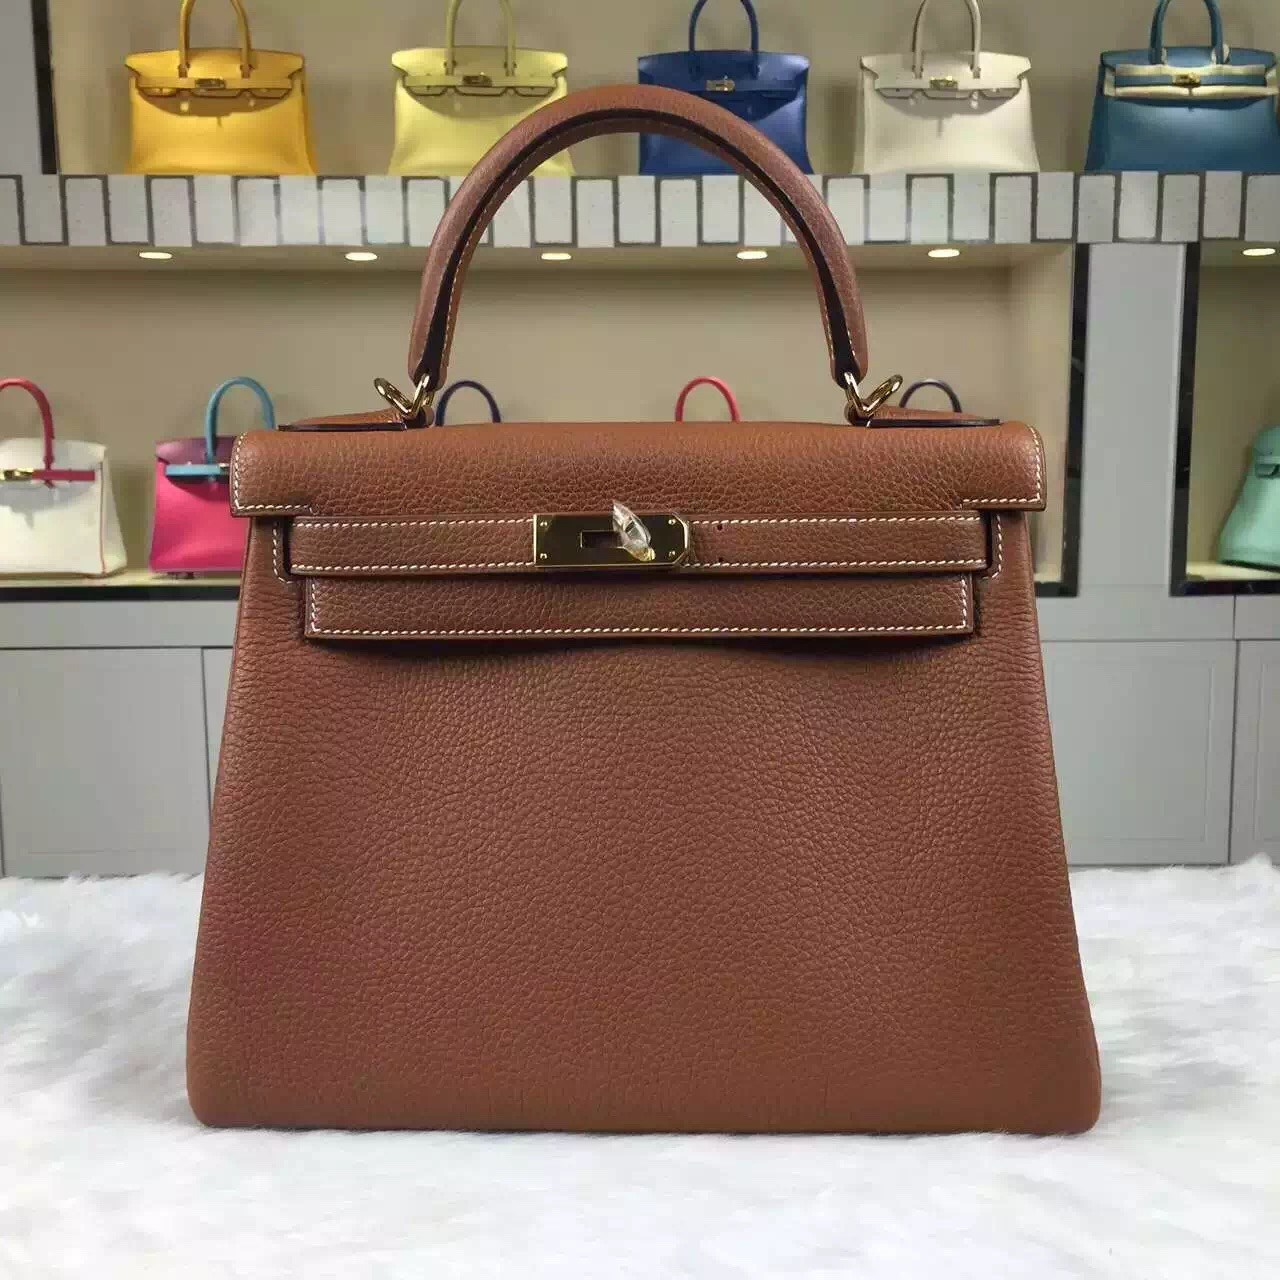 e2e9e34be454 On Sale Hermes CK37 Gold Kelly28 Togo Calfskin Leather Tote Bag